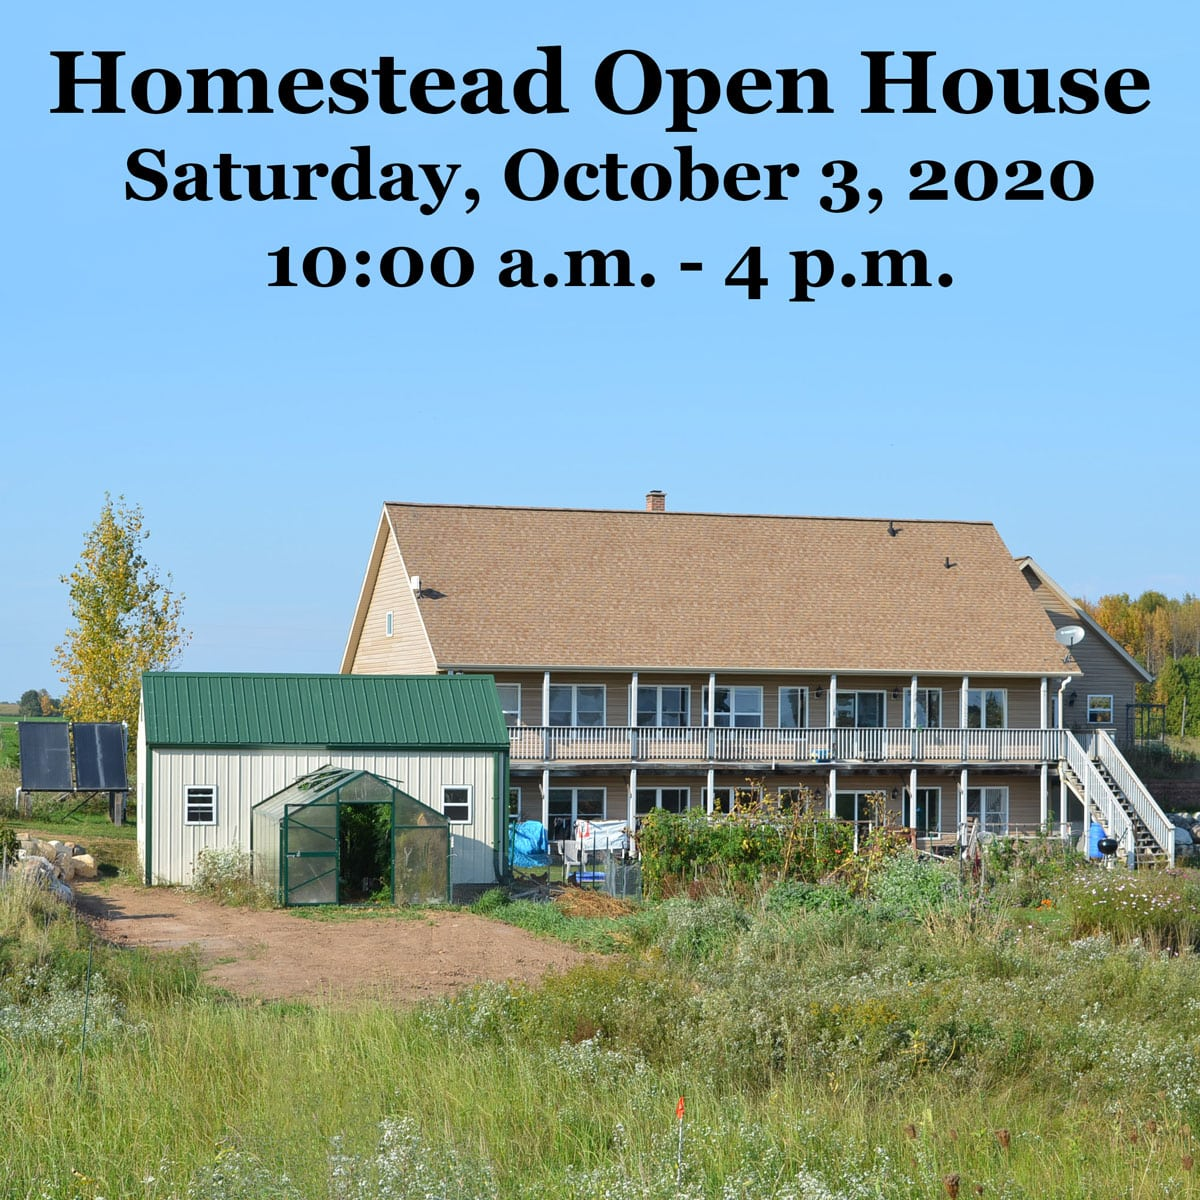 homestead open house 2020